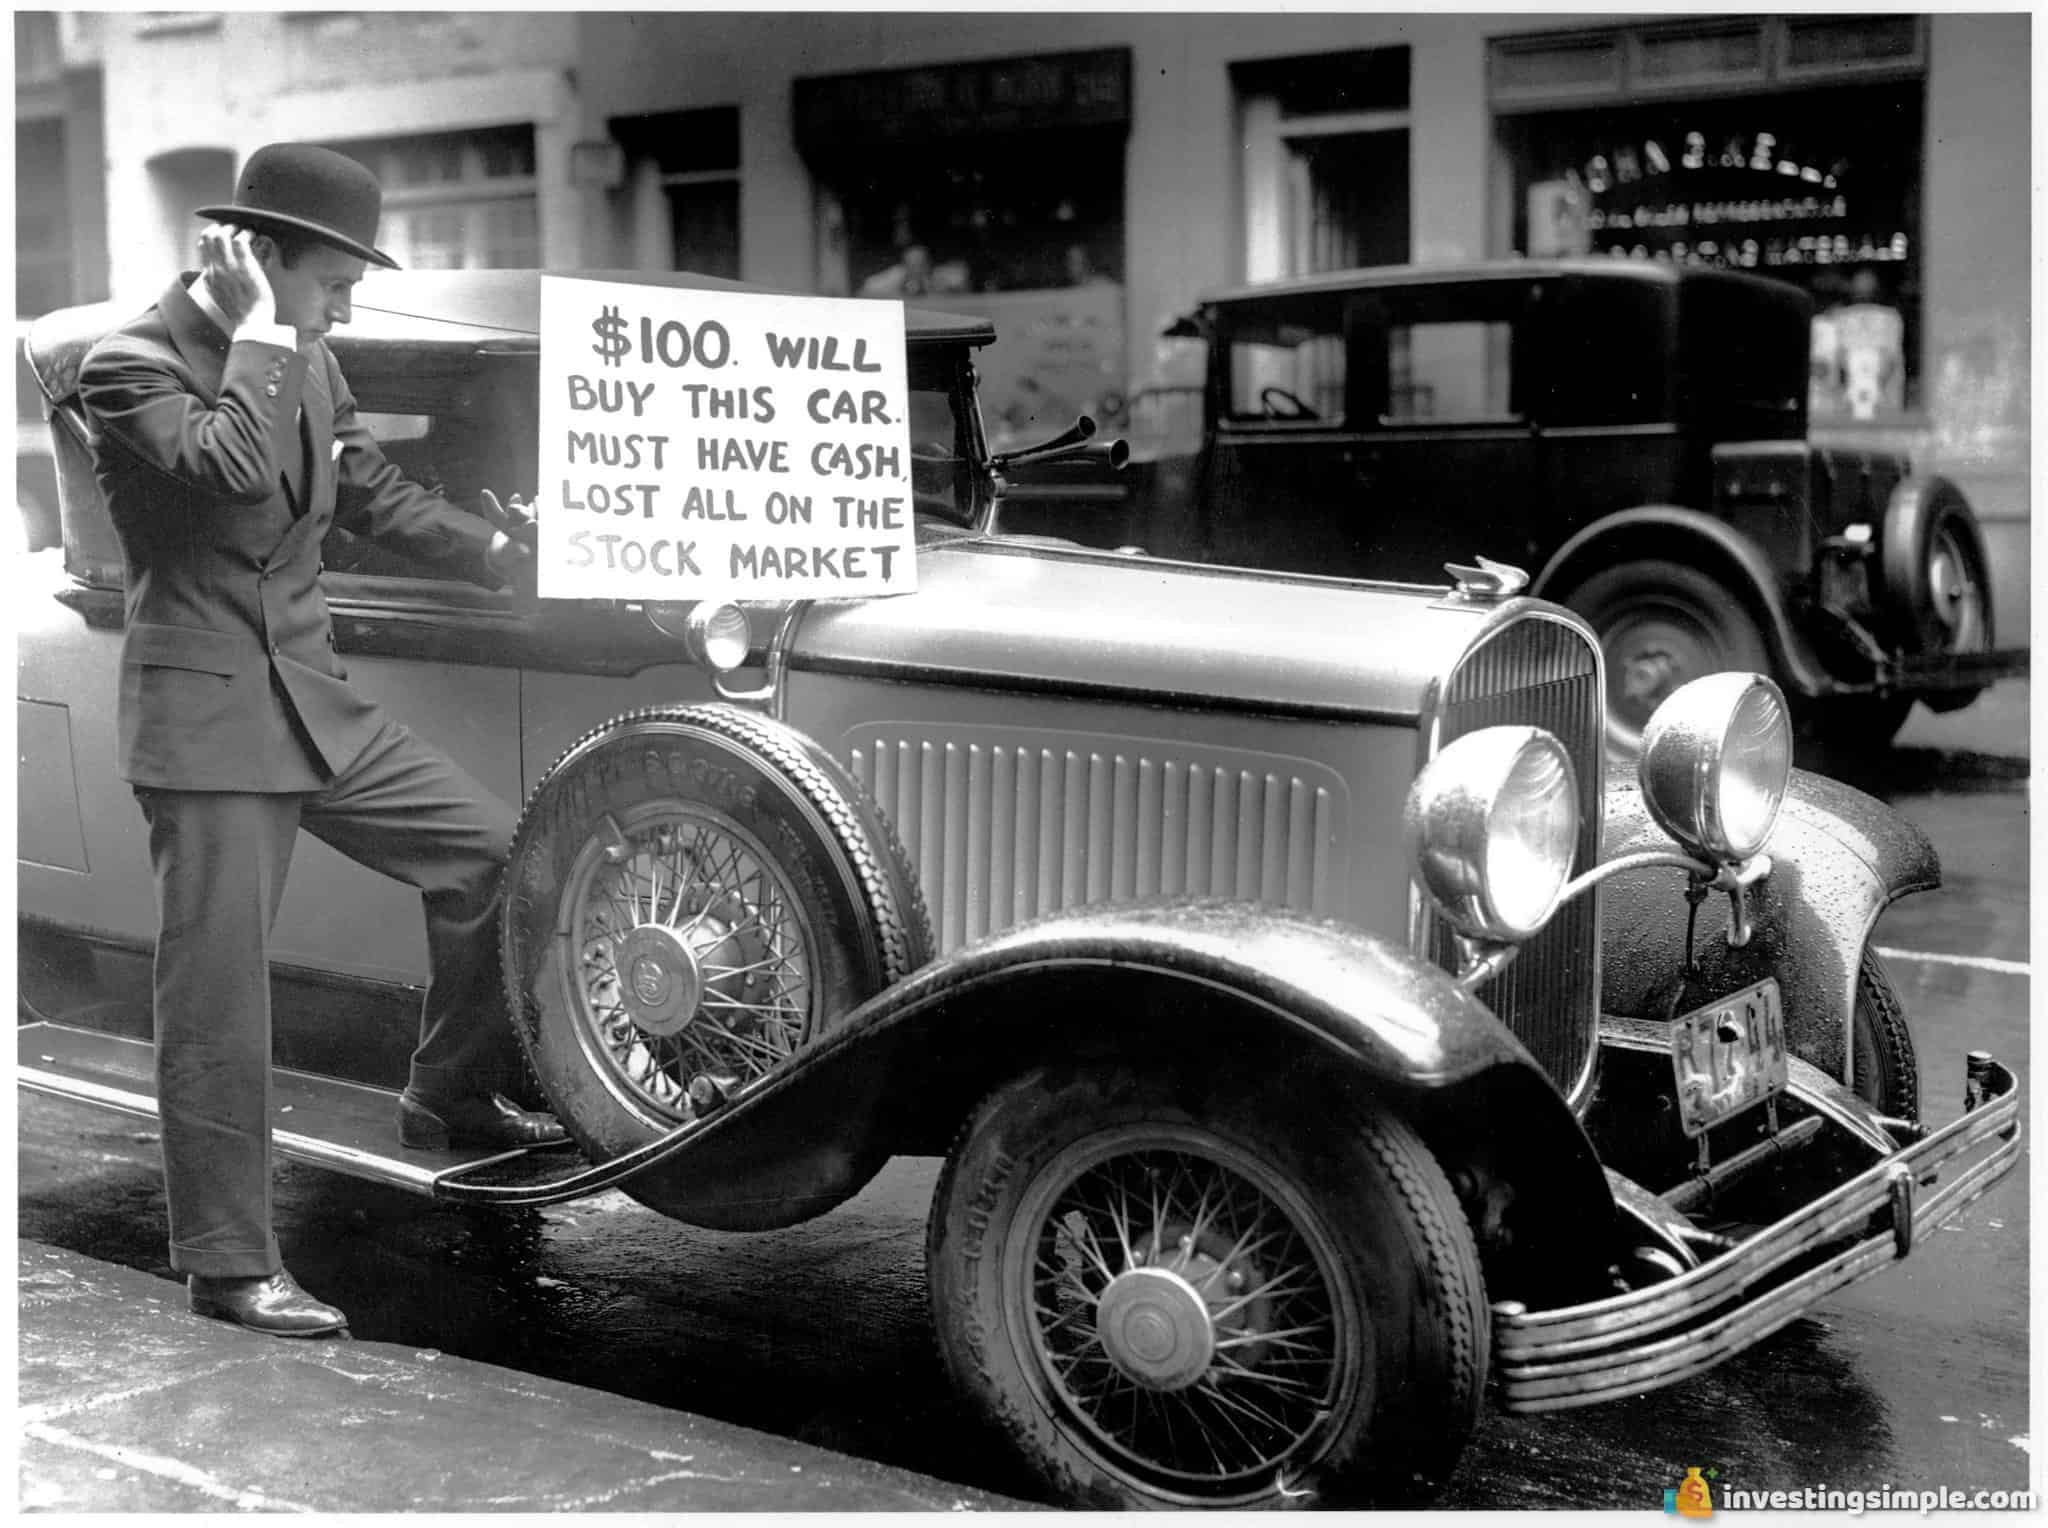 During the great depression after the stock market crash, a man is seen here trying to sell his car after losing all his money in the stock market.